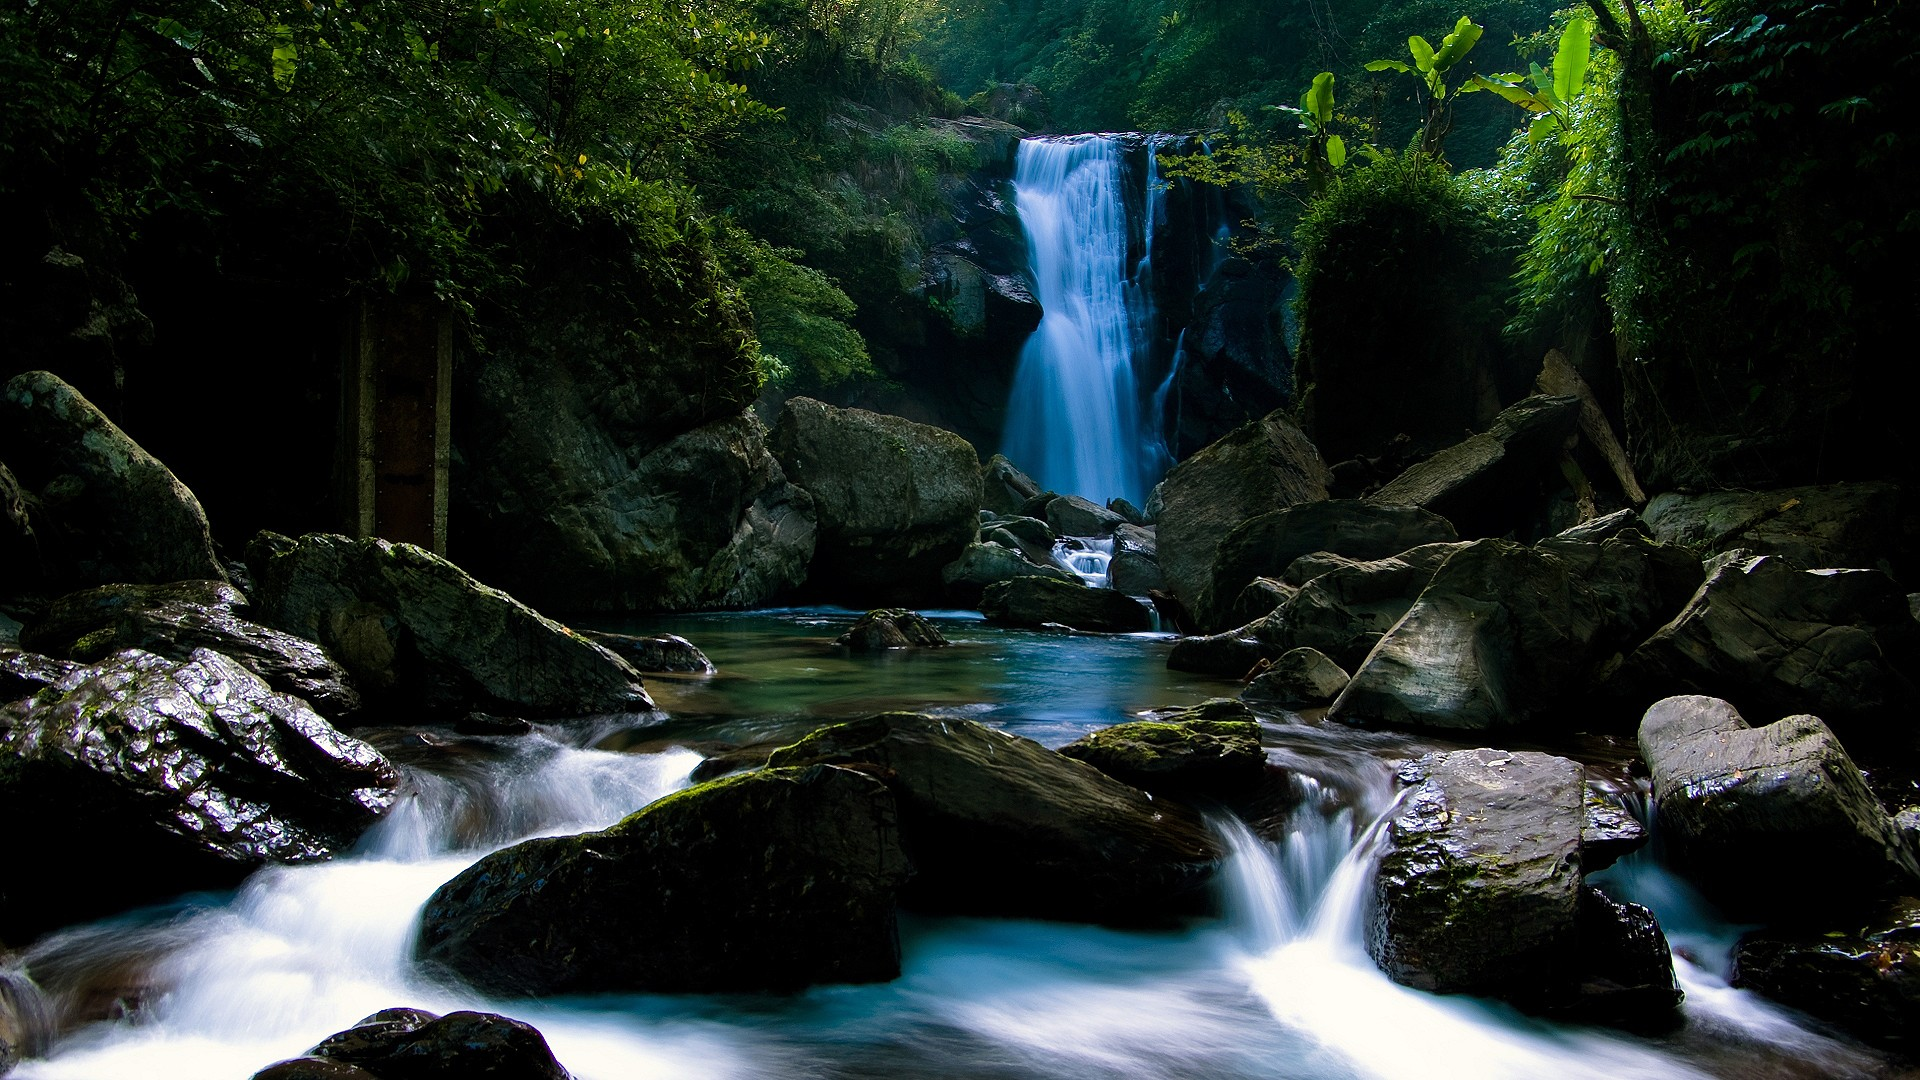 Nature Cool Wallpaper 124 Awesome Waterfall Backgrounds